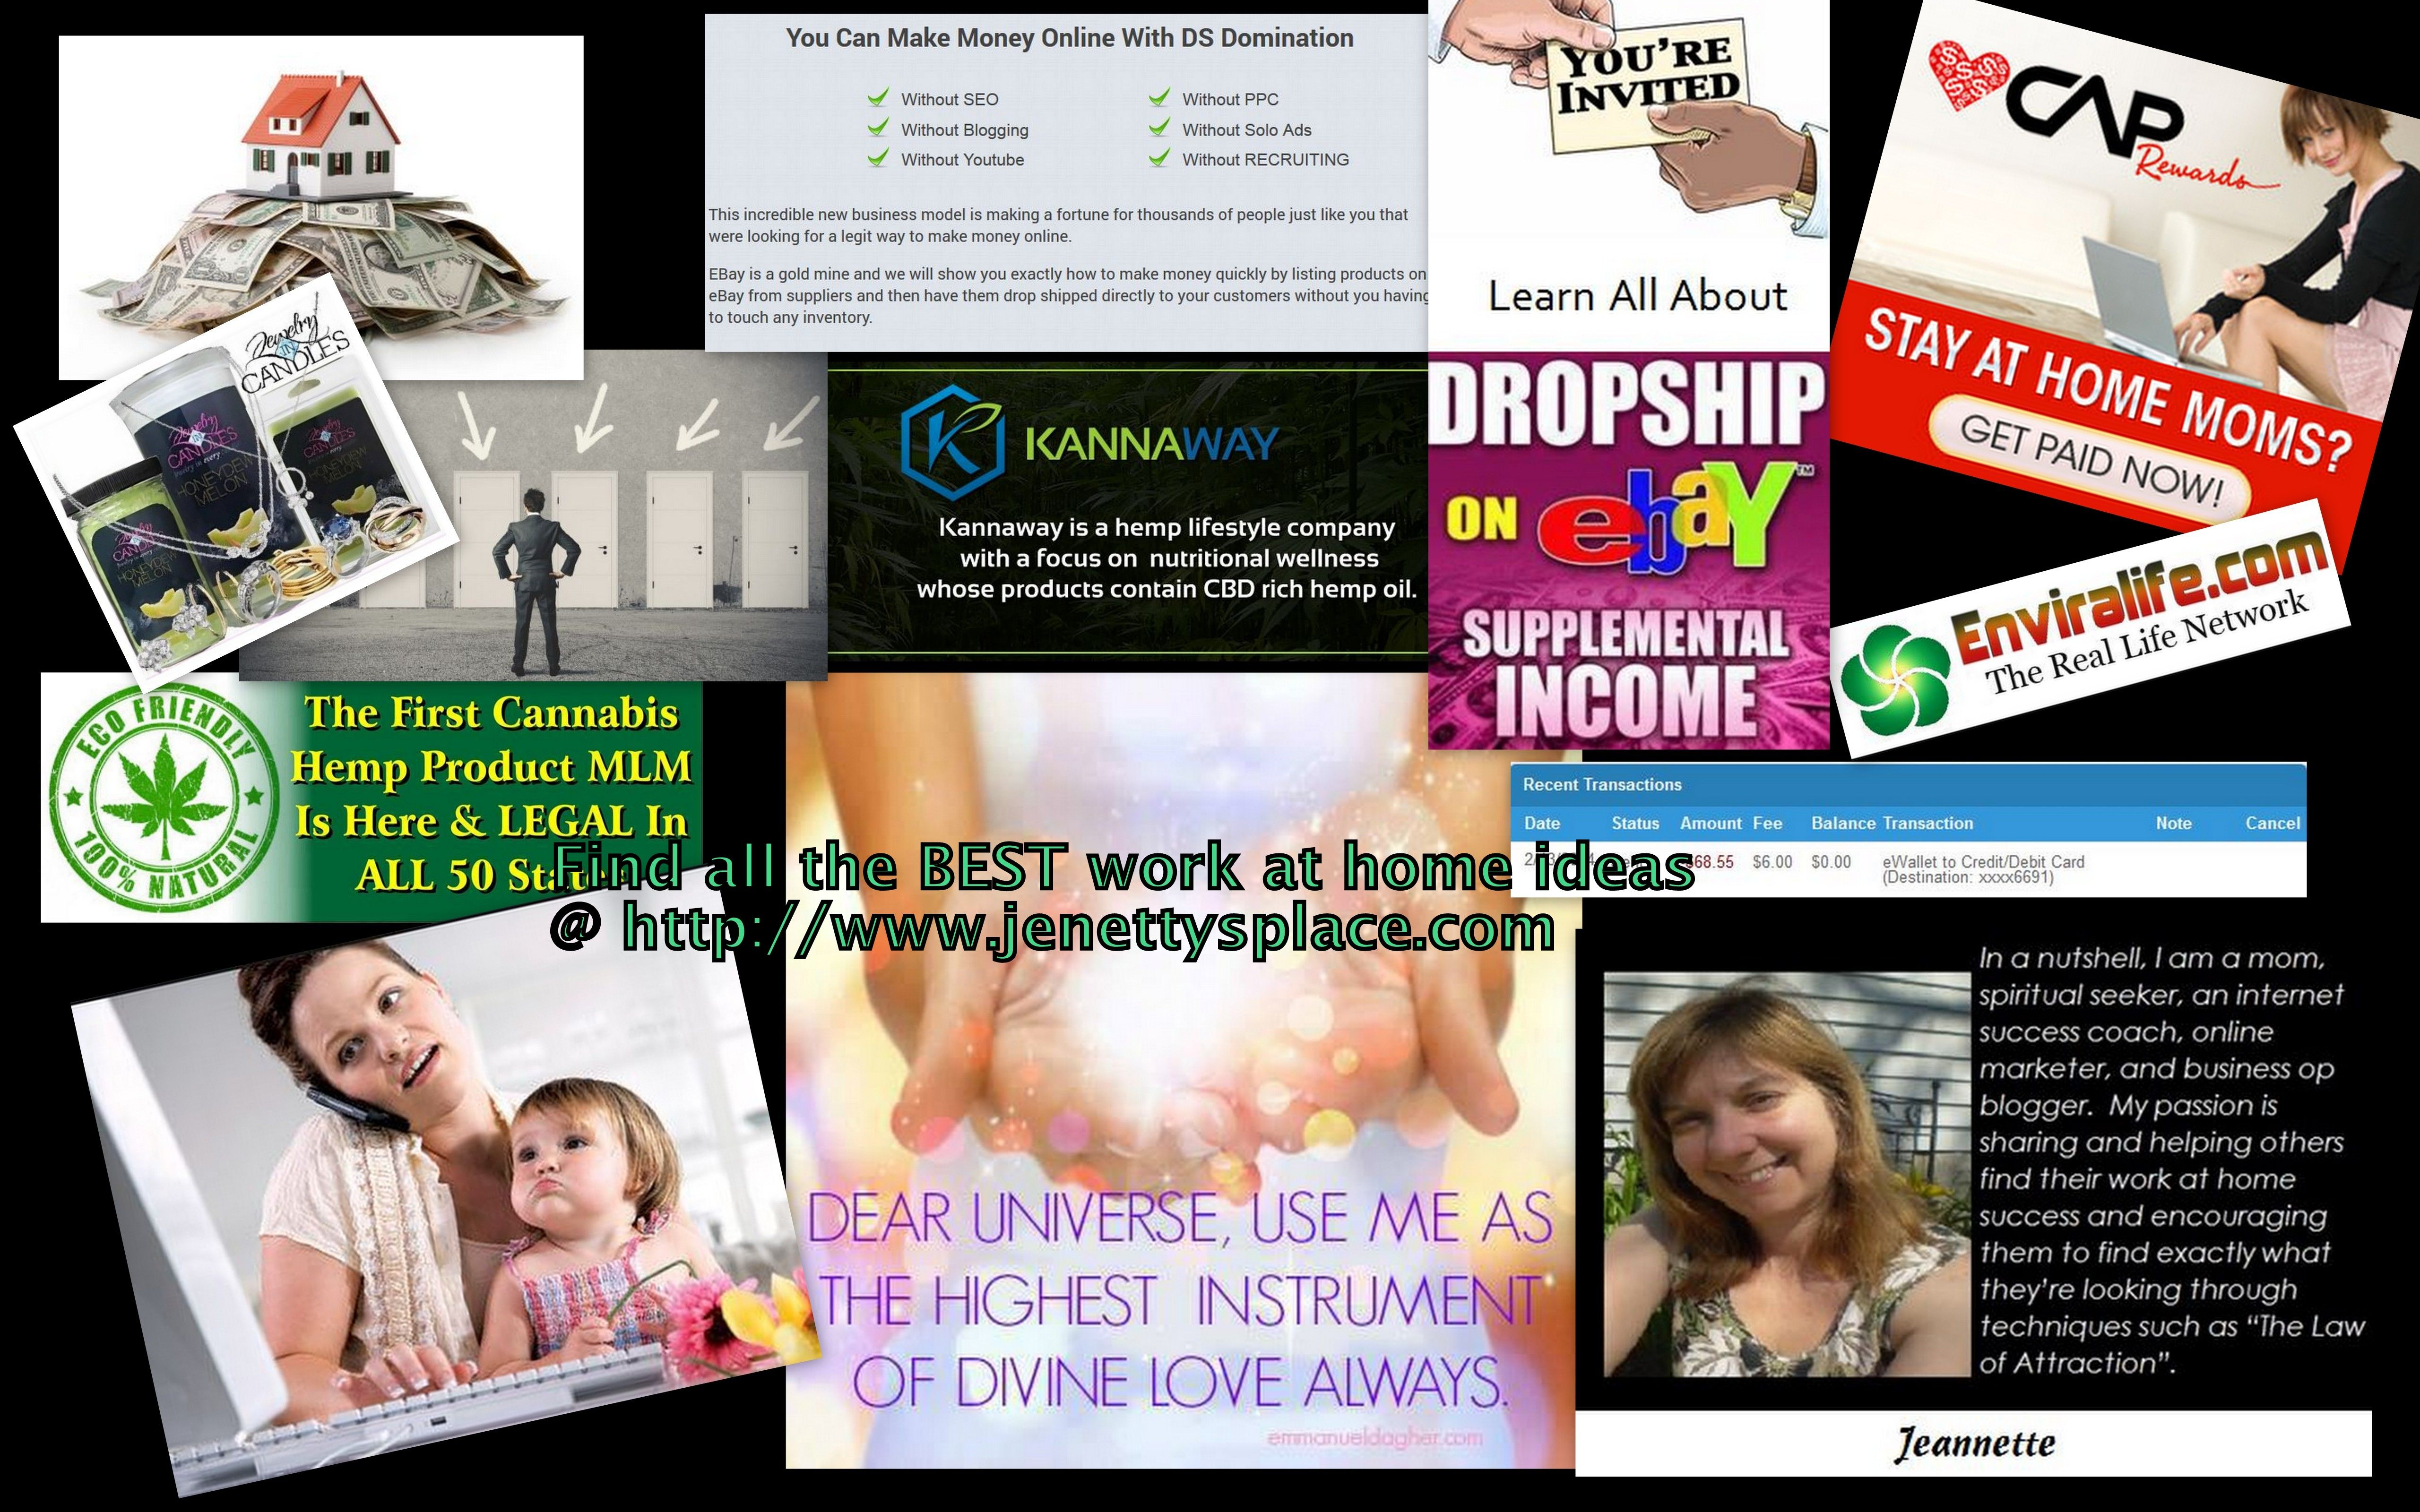 You can find great ways to make money at home I can help